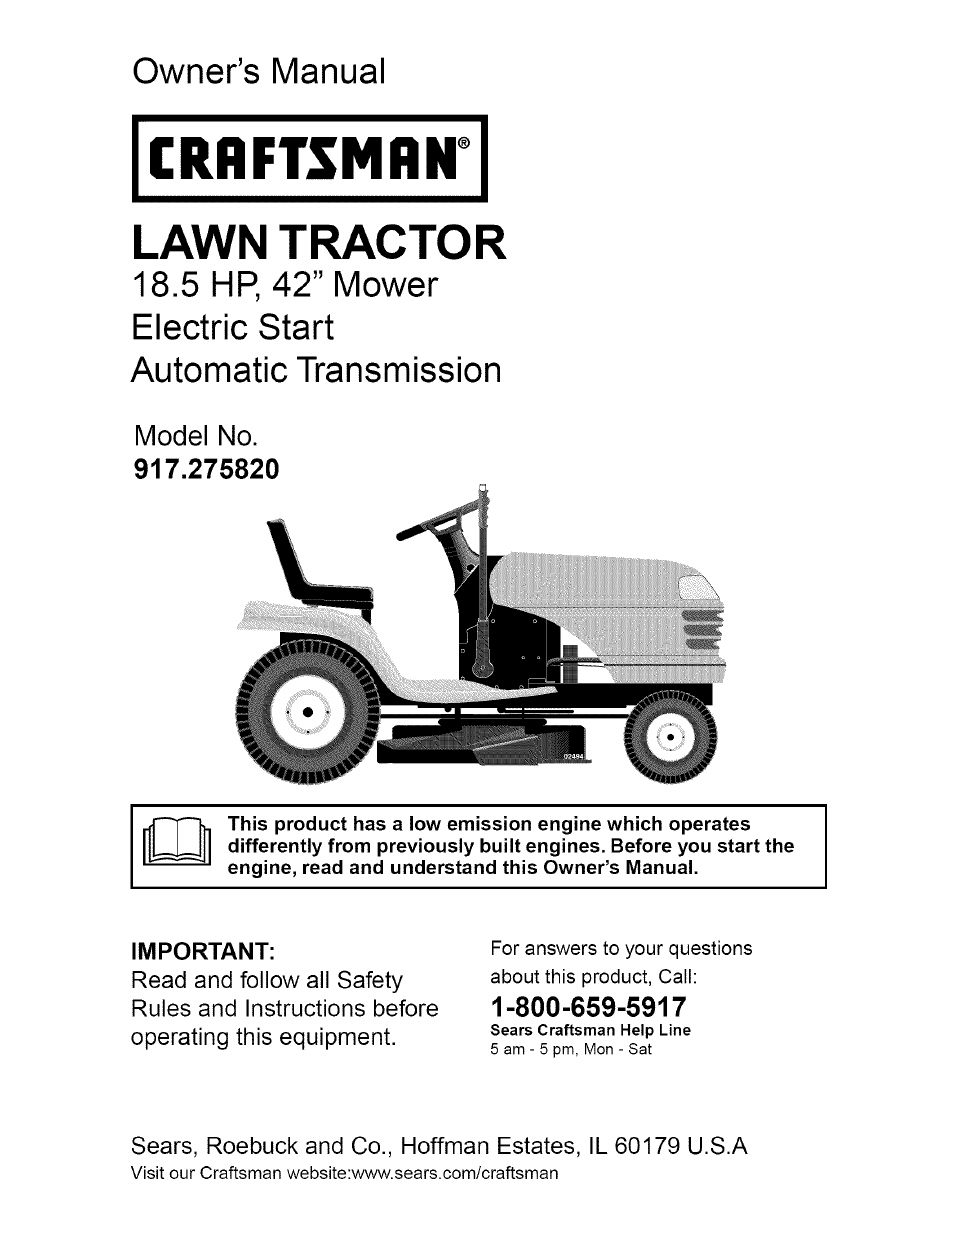 craftsman lawn mower model 917 wiring diagram craftsman craftsman dlt 3000 wiring diagram craftsman auto wiring diagram on craftsman lawn mower model 917 wiring